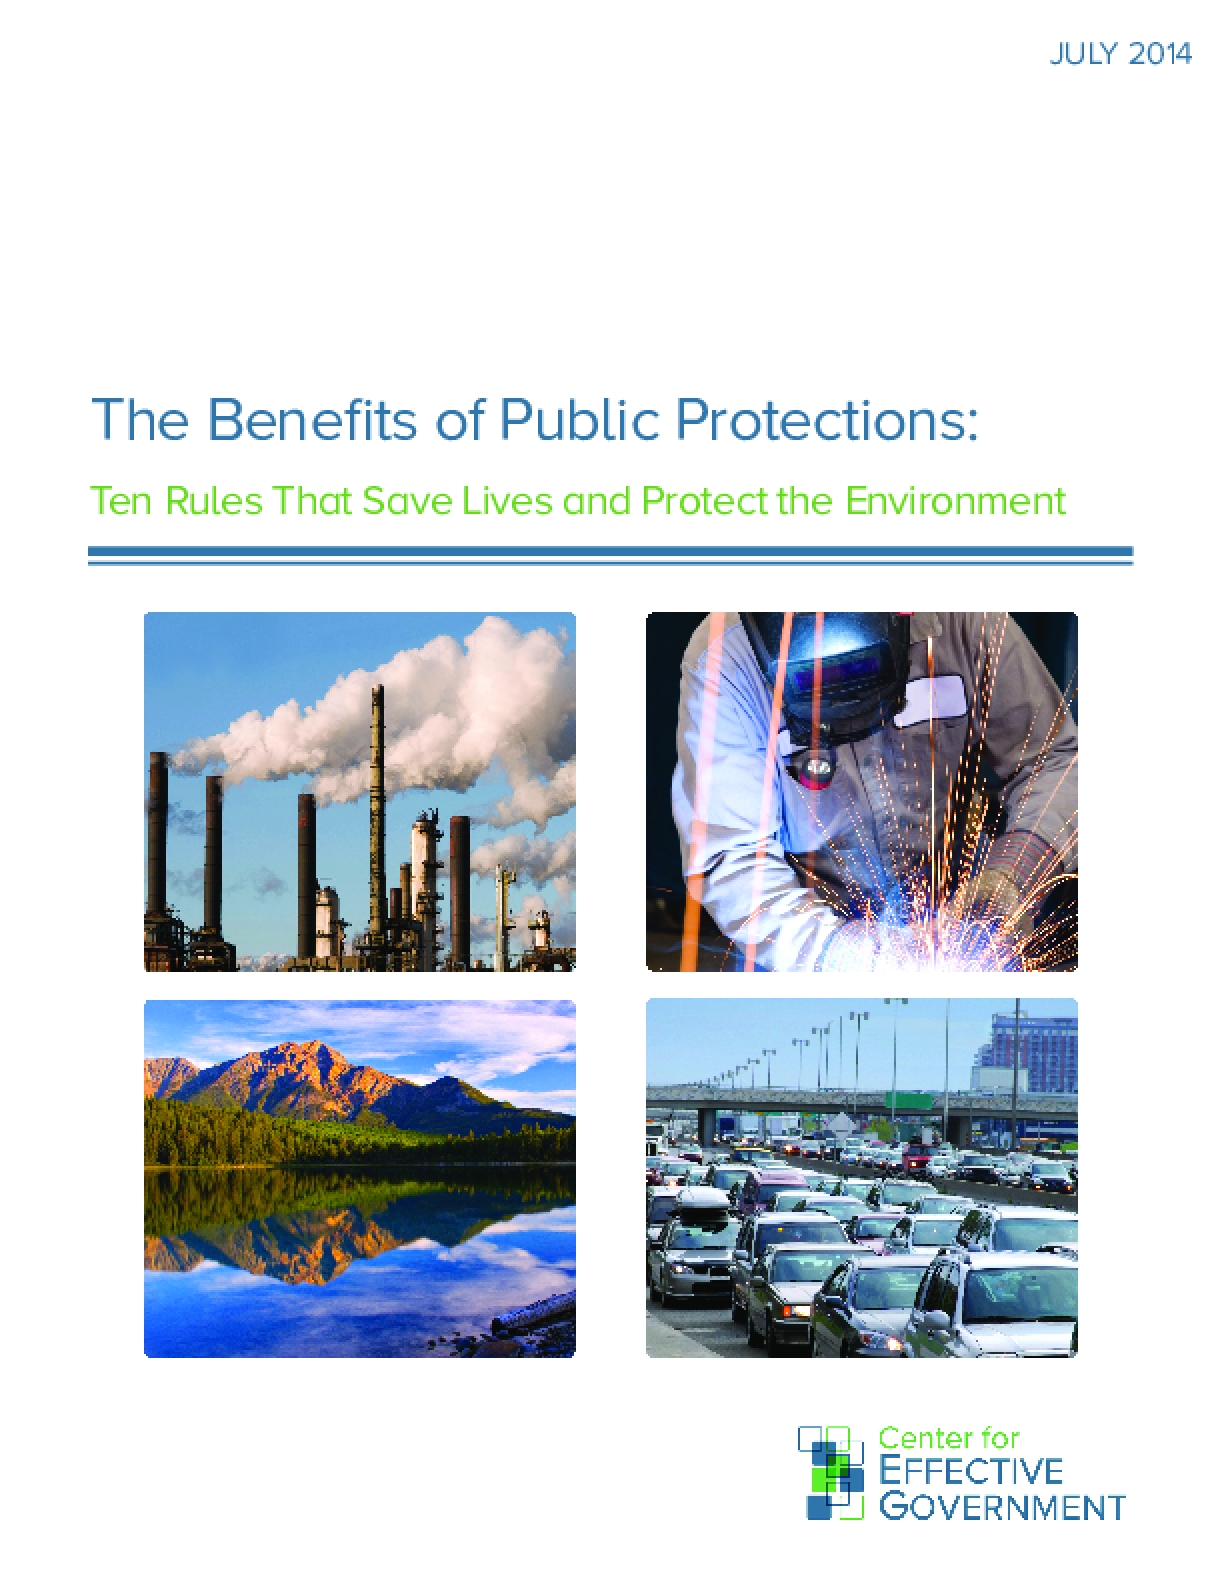 The Benefits of Public Protections: Ten Rules That Save Lives and Protect the Environment